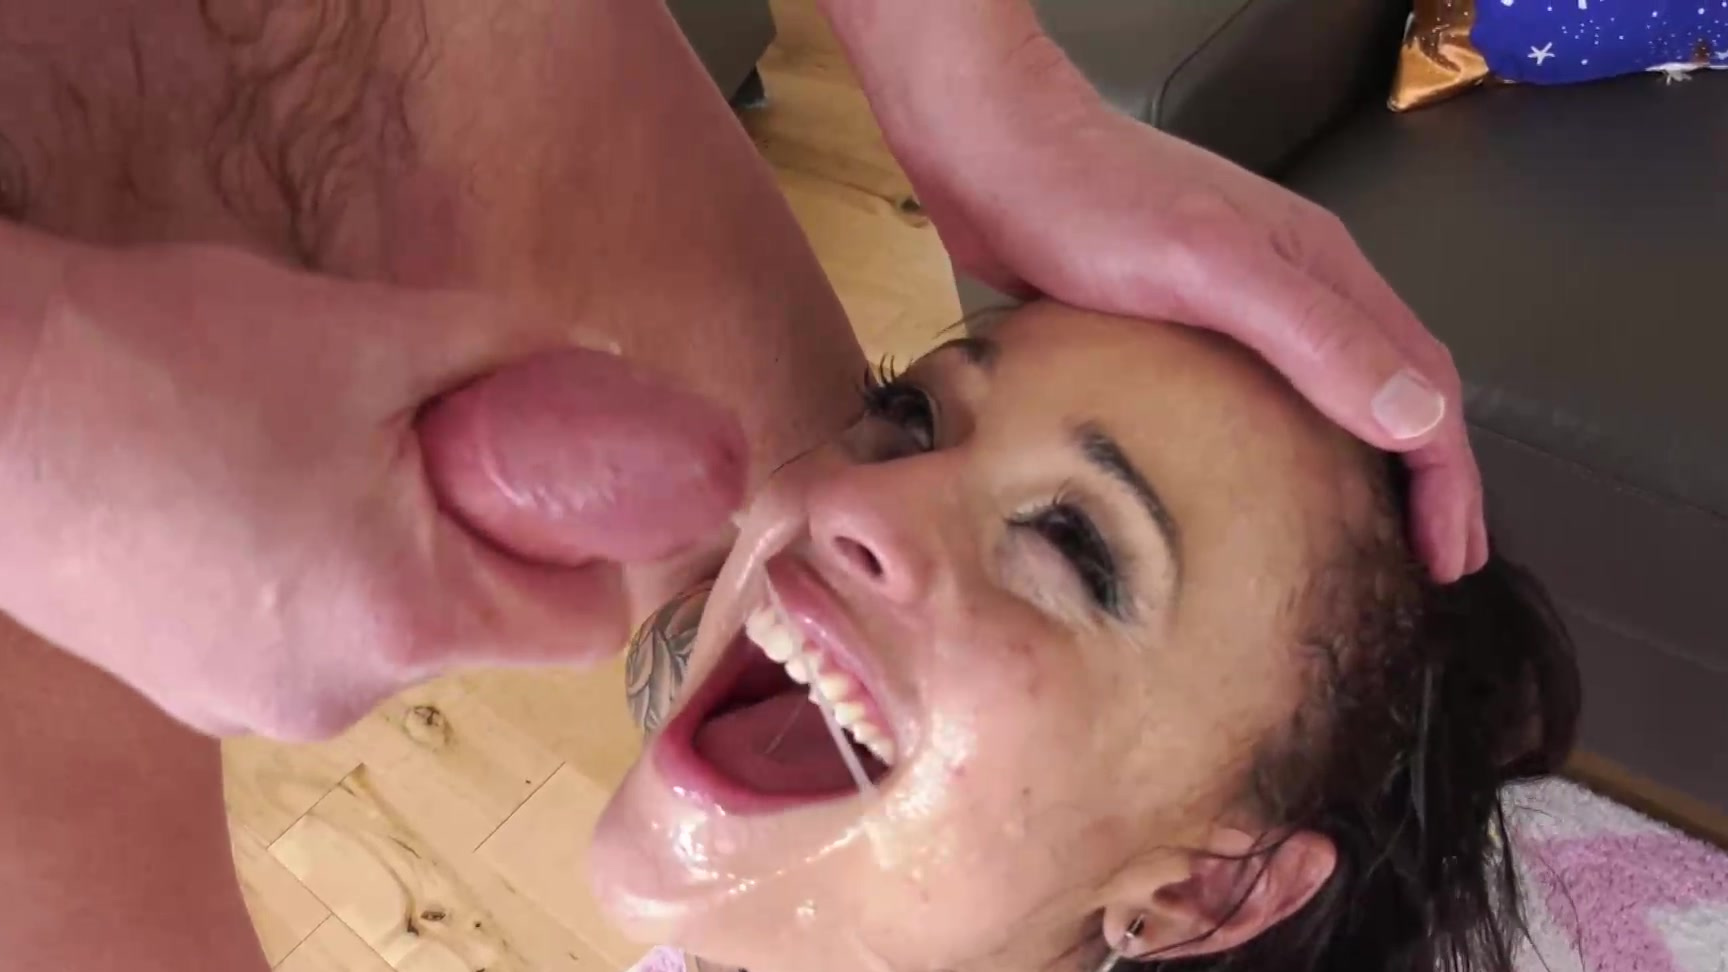 Face fucked by huge cock